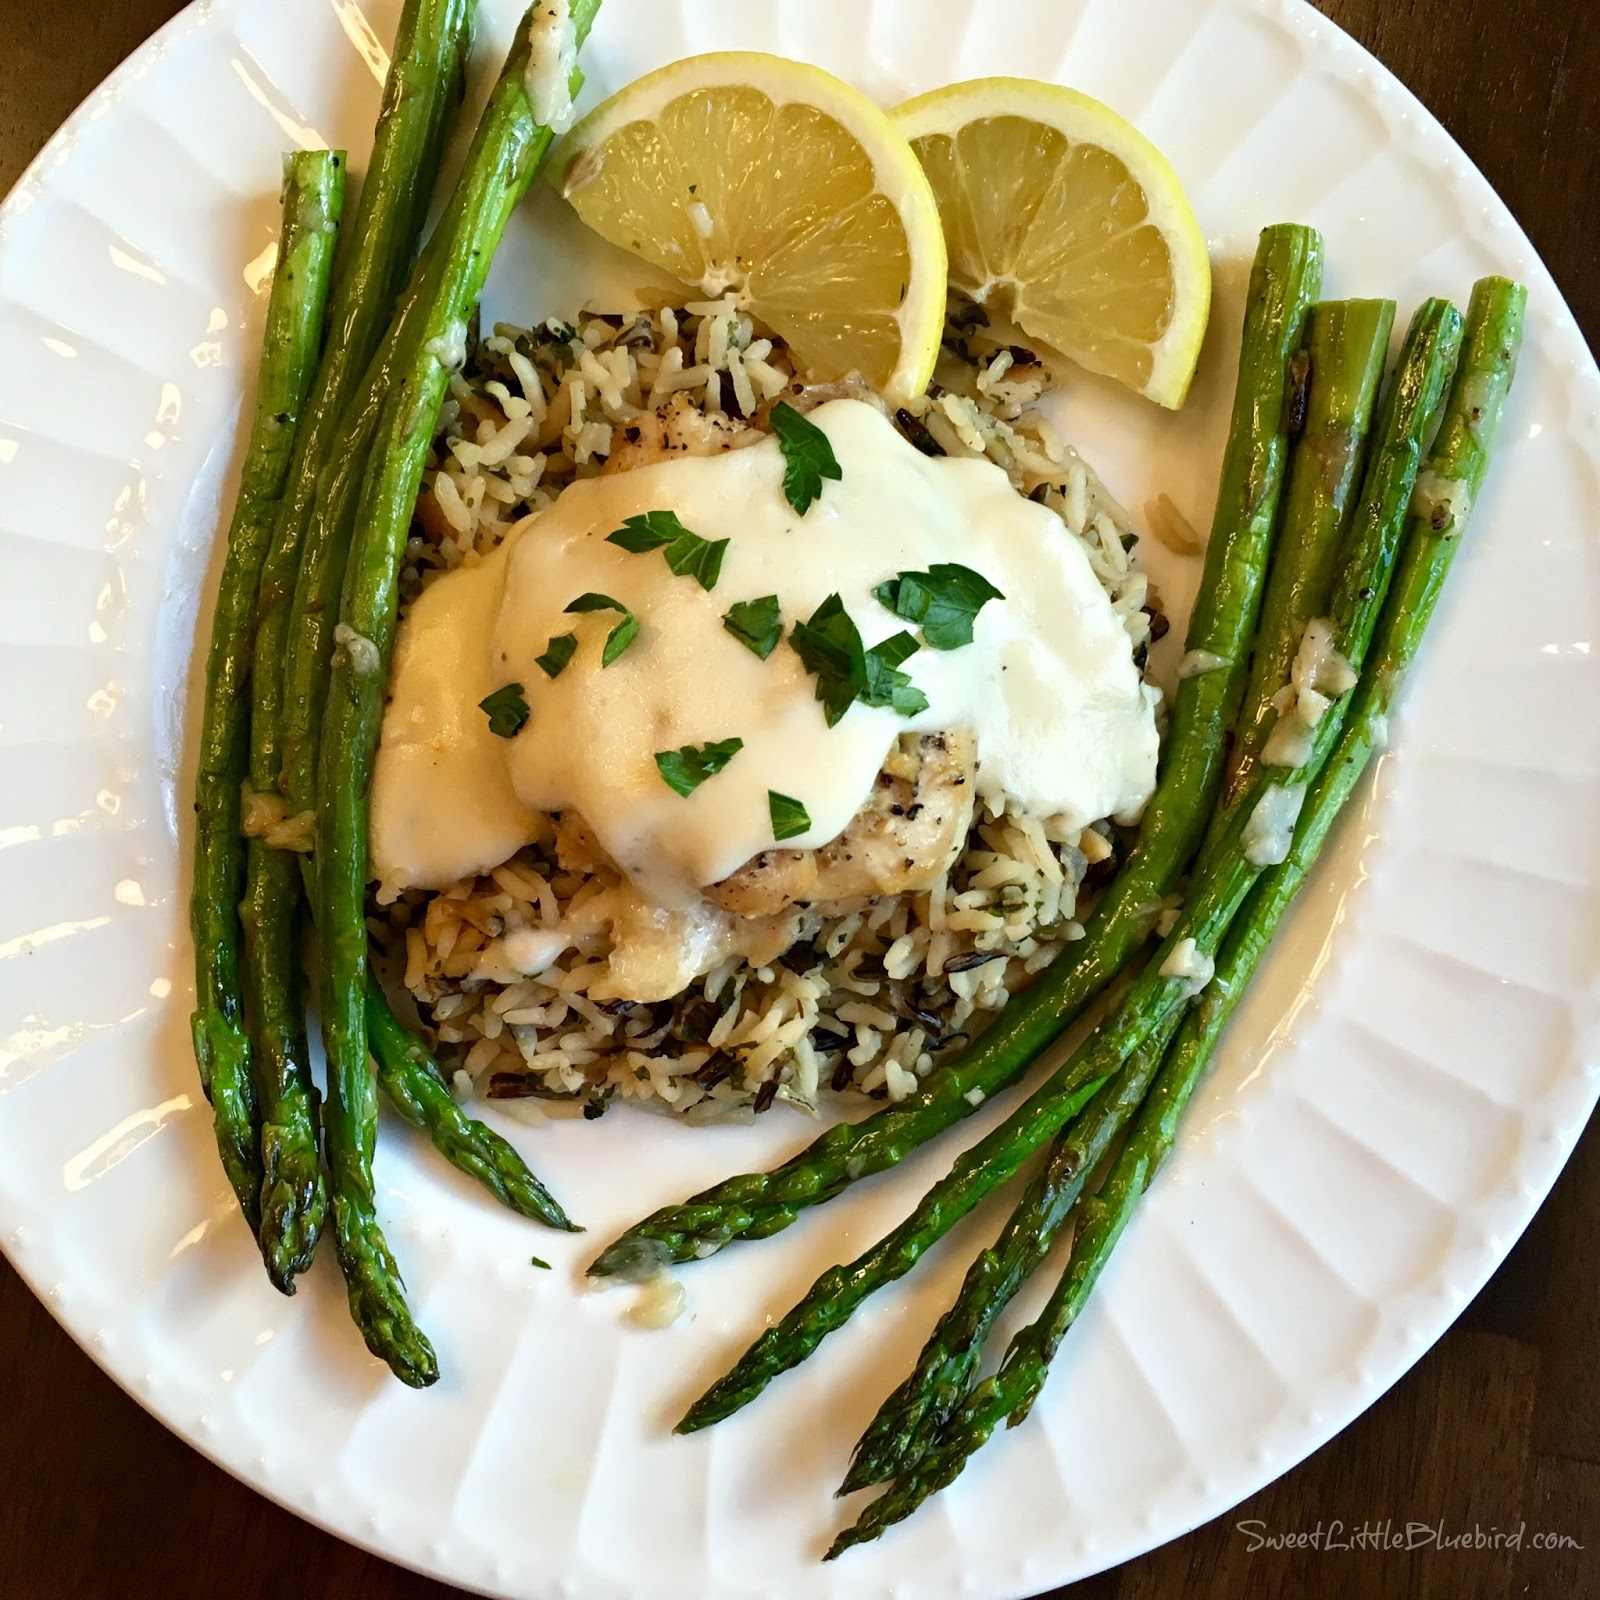 Slow Cooker Lemon Garlic Chicken With Creamy Lemon Sauce Archives Sweet Little Bluebird,Family House Two Story 5 Bedroom 2 Story House Plans